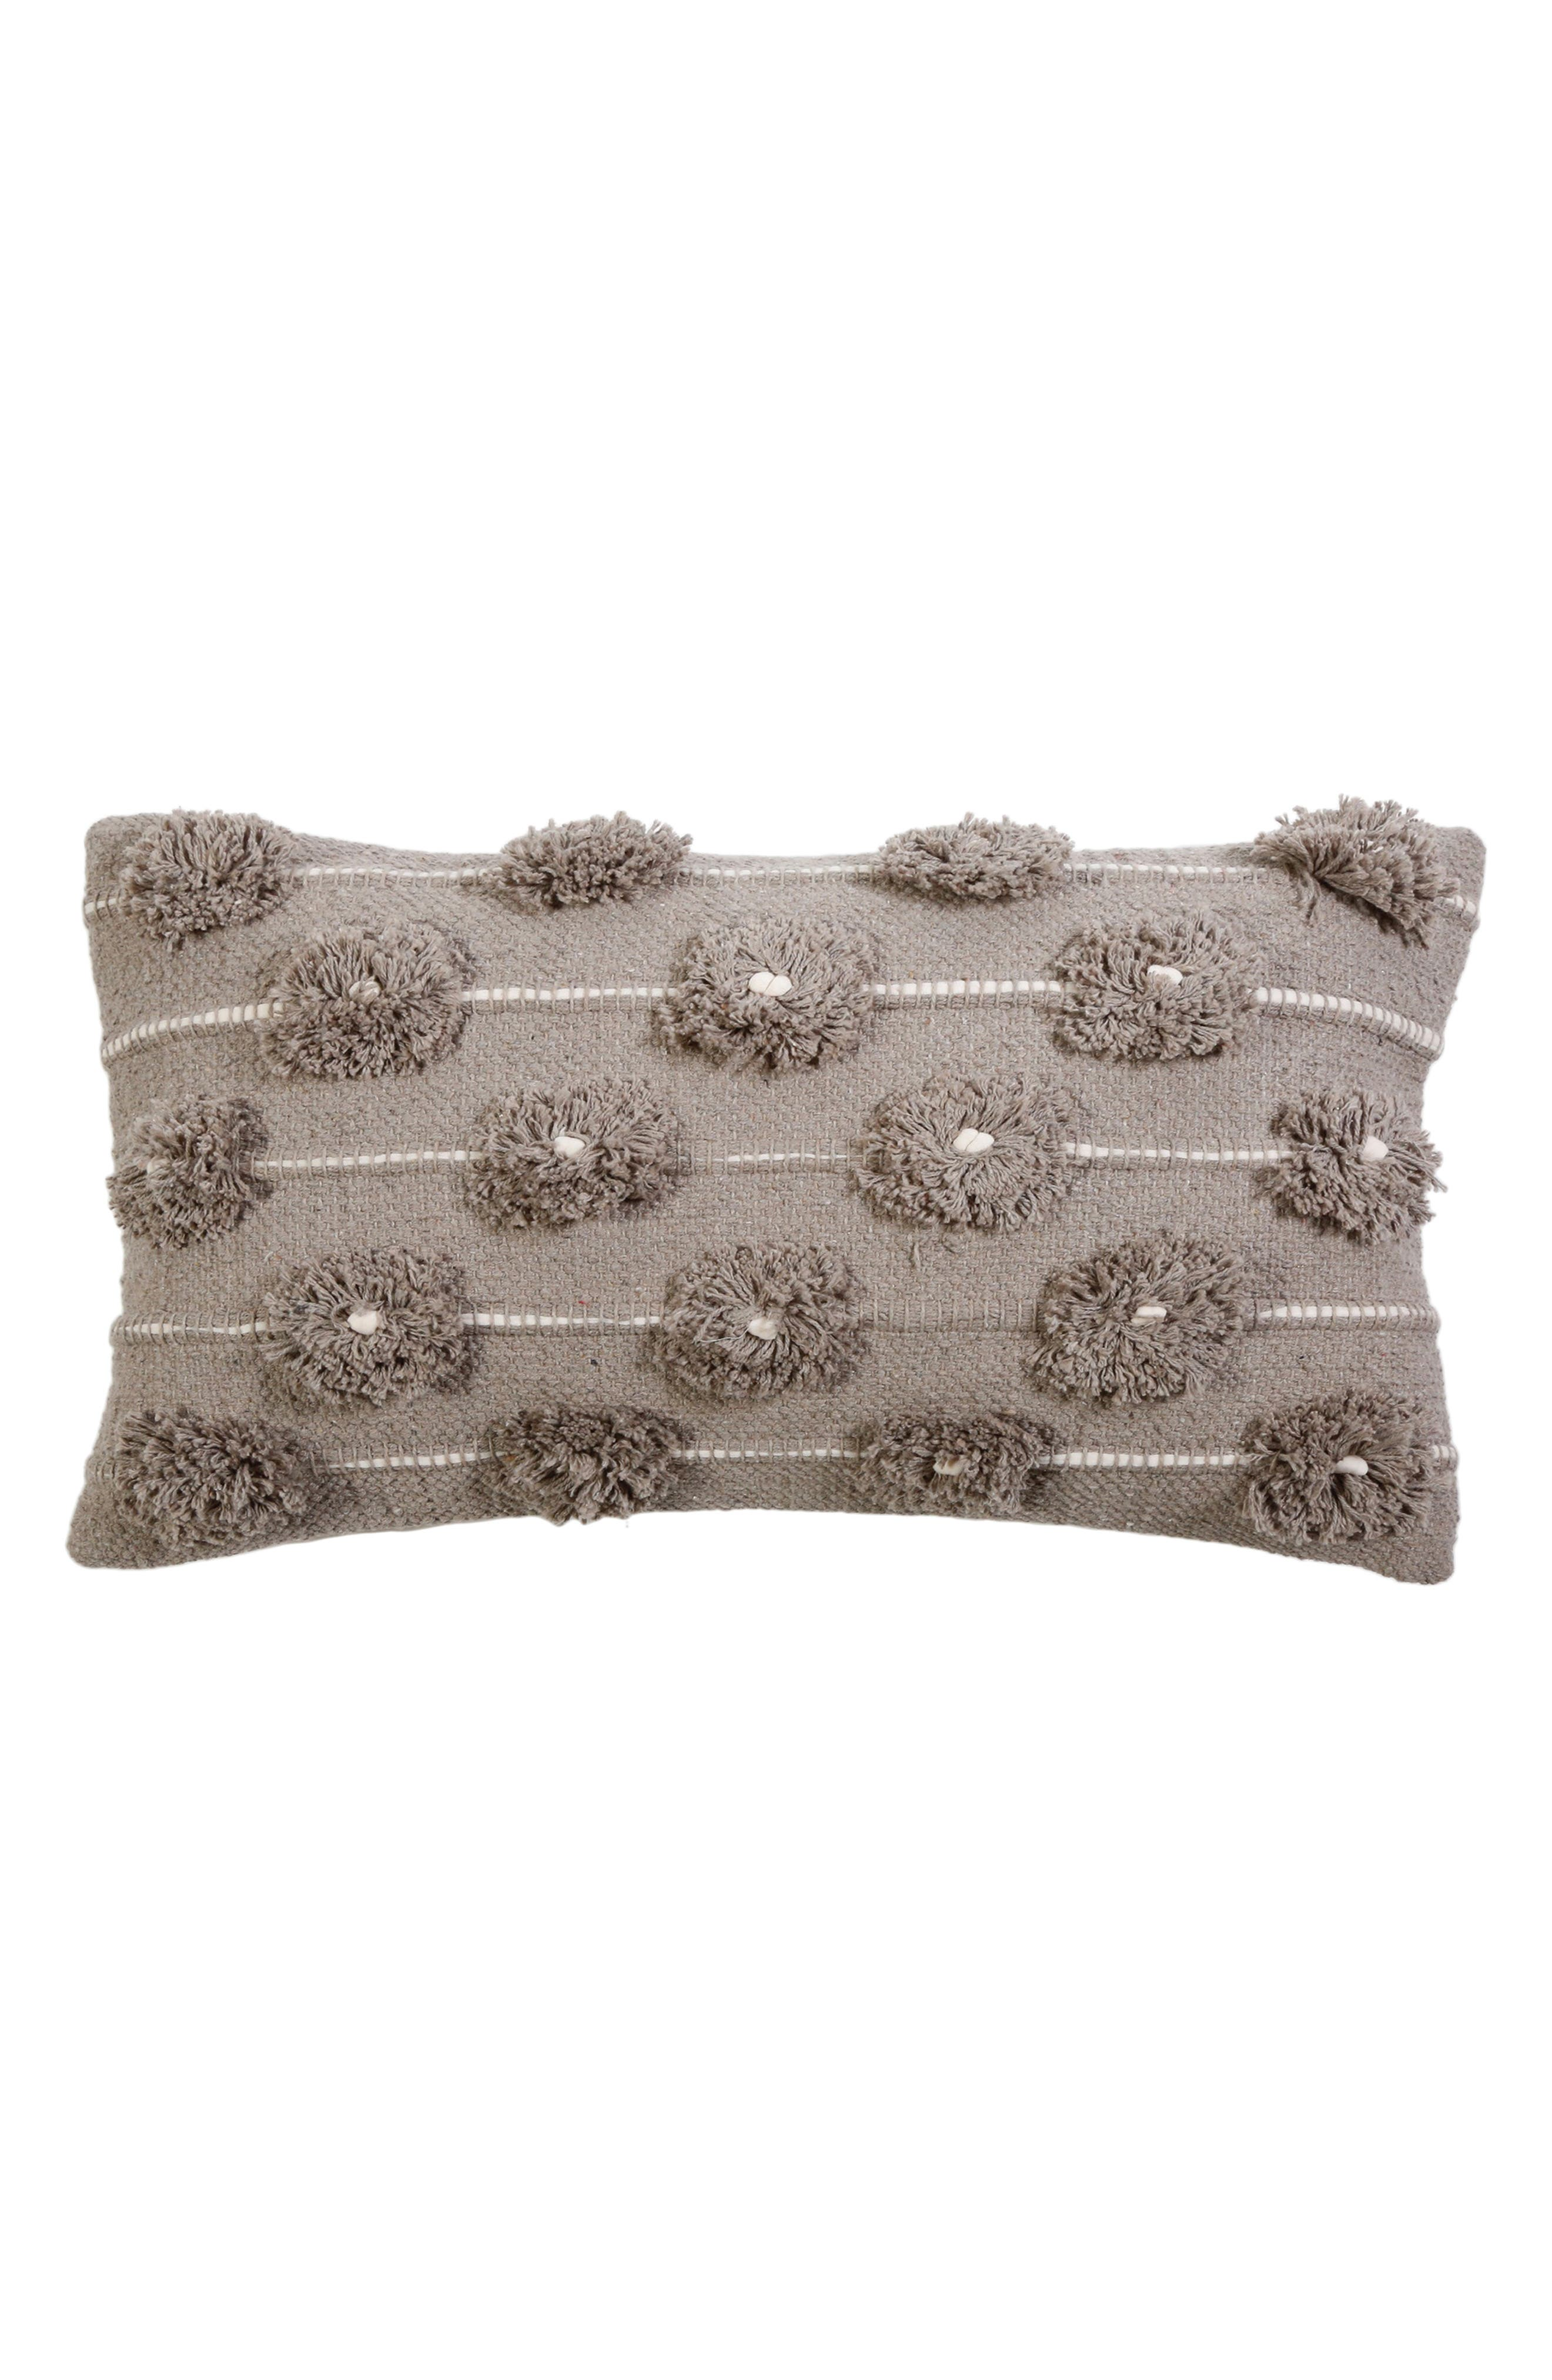 Plush poms and slender stripes lend tactile charm to a handwoven accent pillow done in soft neutral hues. Style Name: Pom Pom At Home Lola Accent Pillow. Style Number: 5857472. Available in stores.